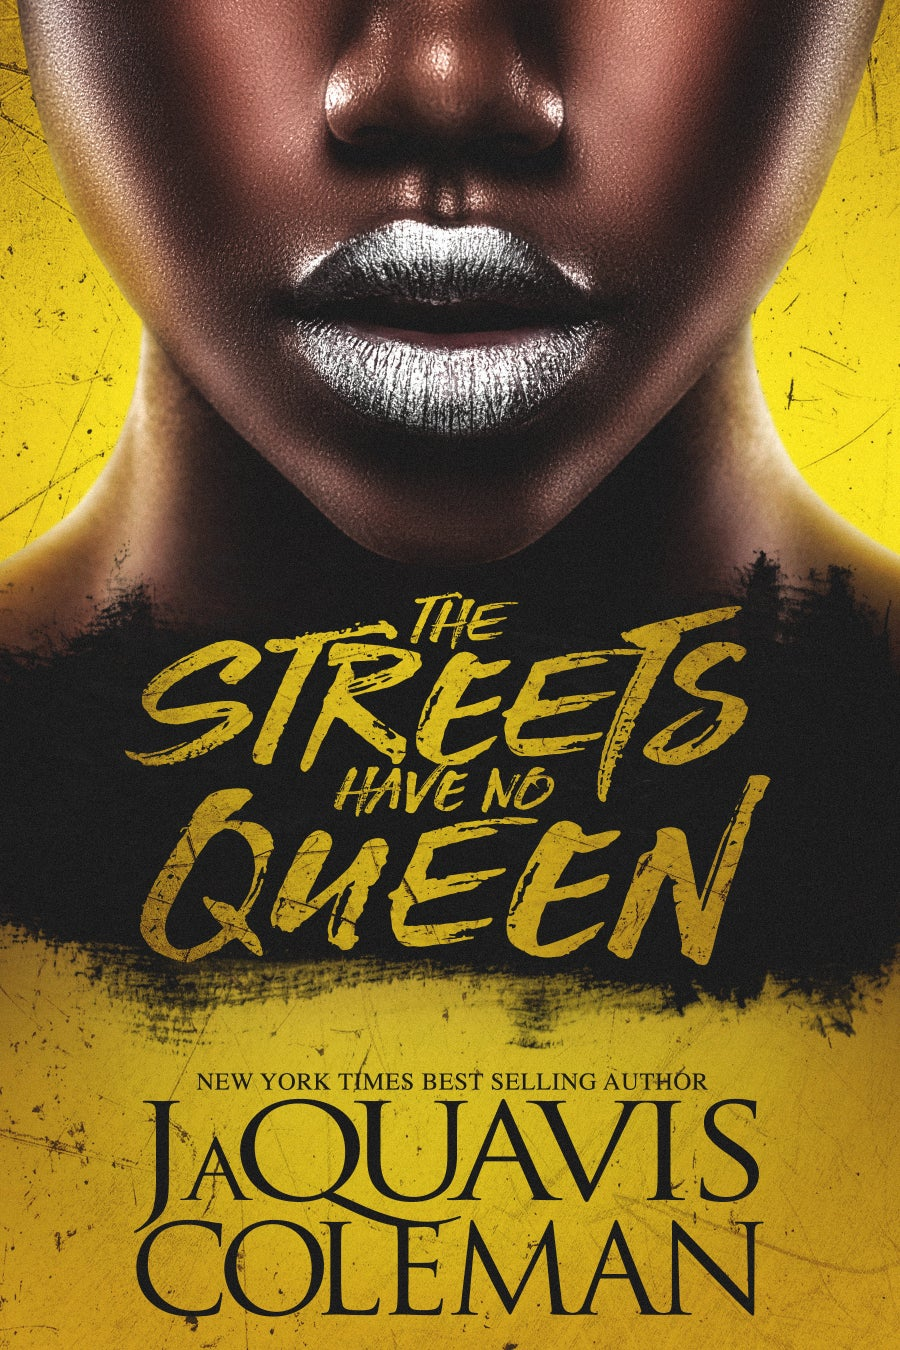 Image of The Streets Have no Queen